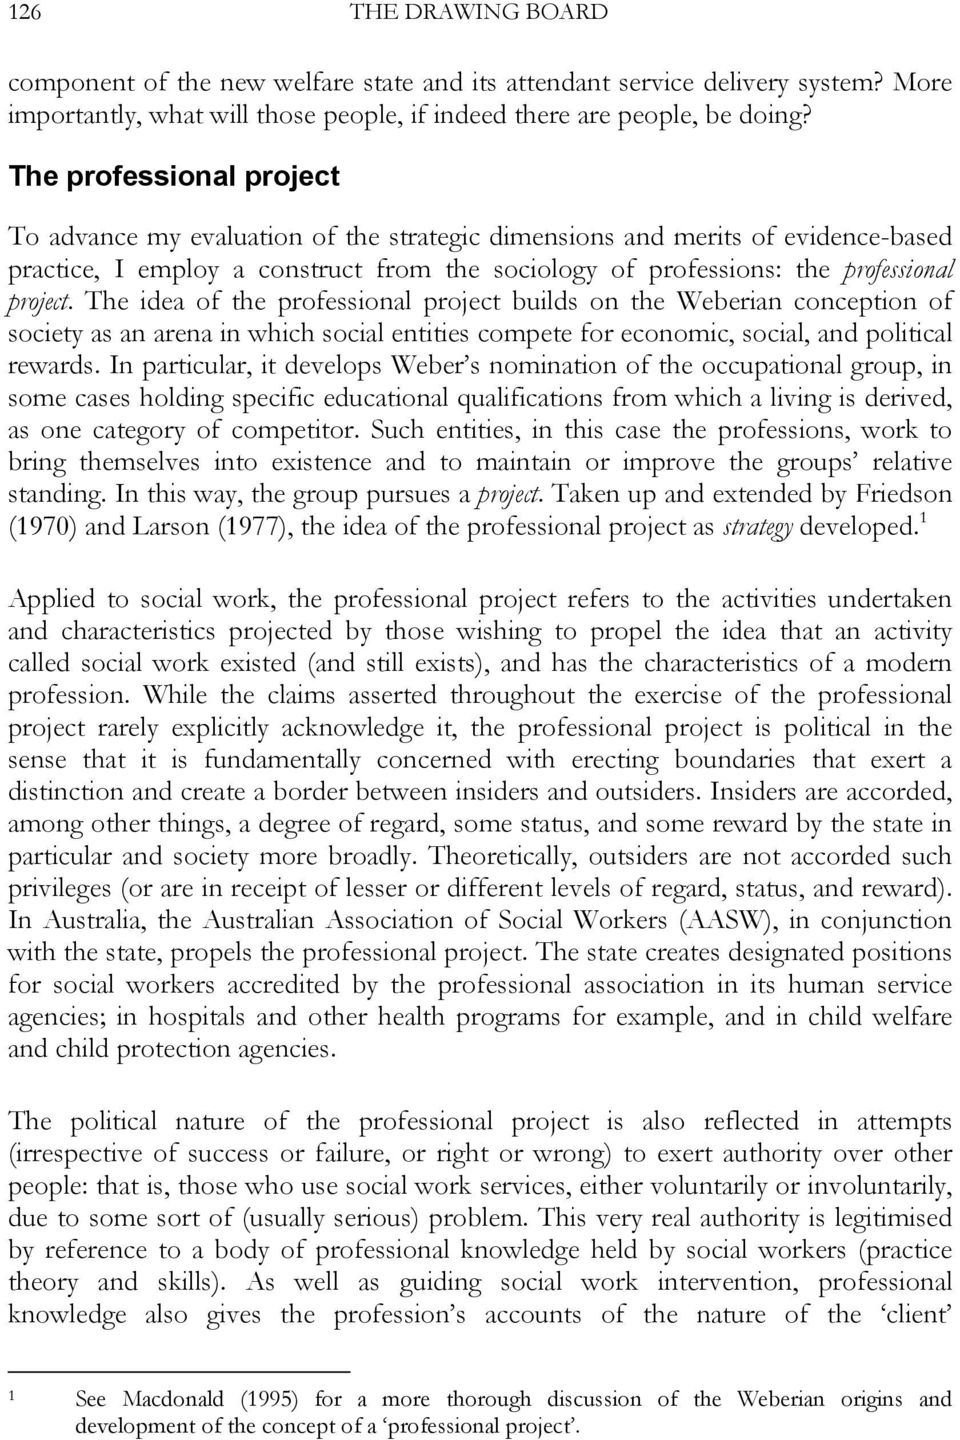 The idea of the professional project builds on the Weberian conception of society as an arena in which social entities compete for economic, social, and political rewards.